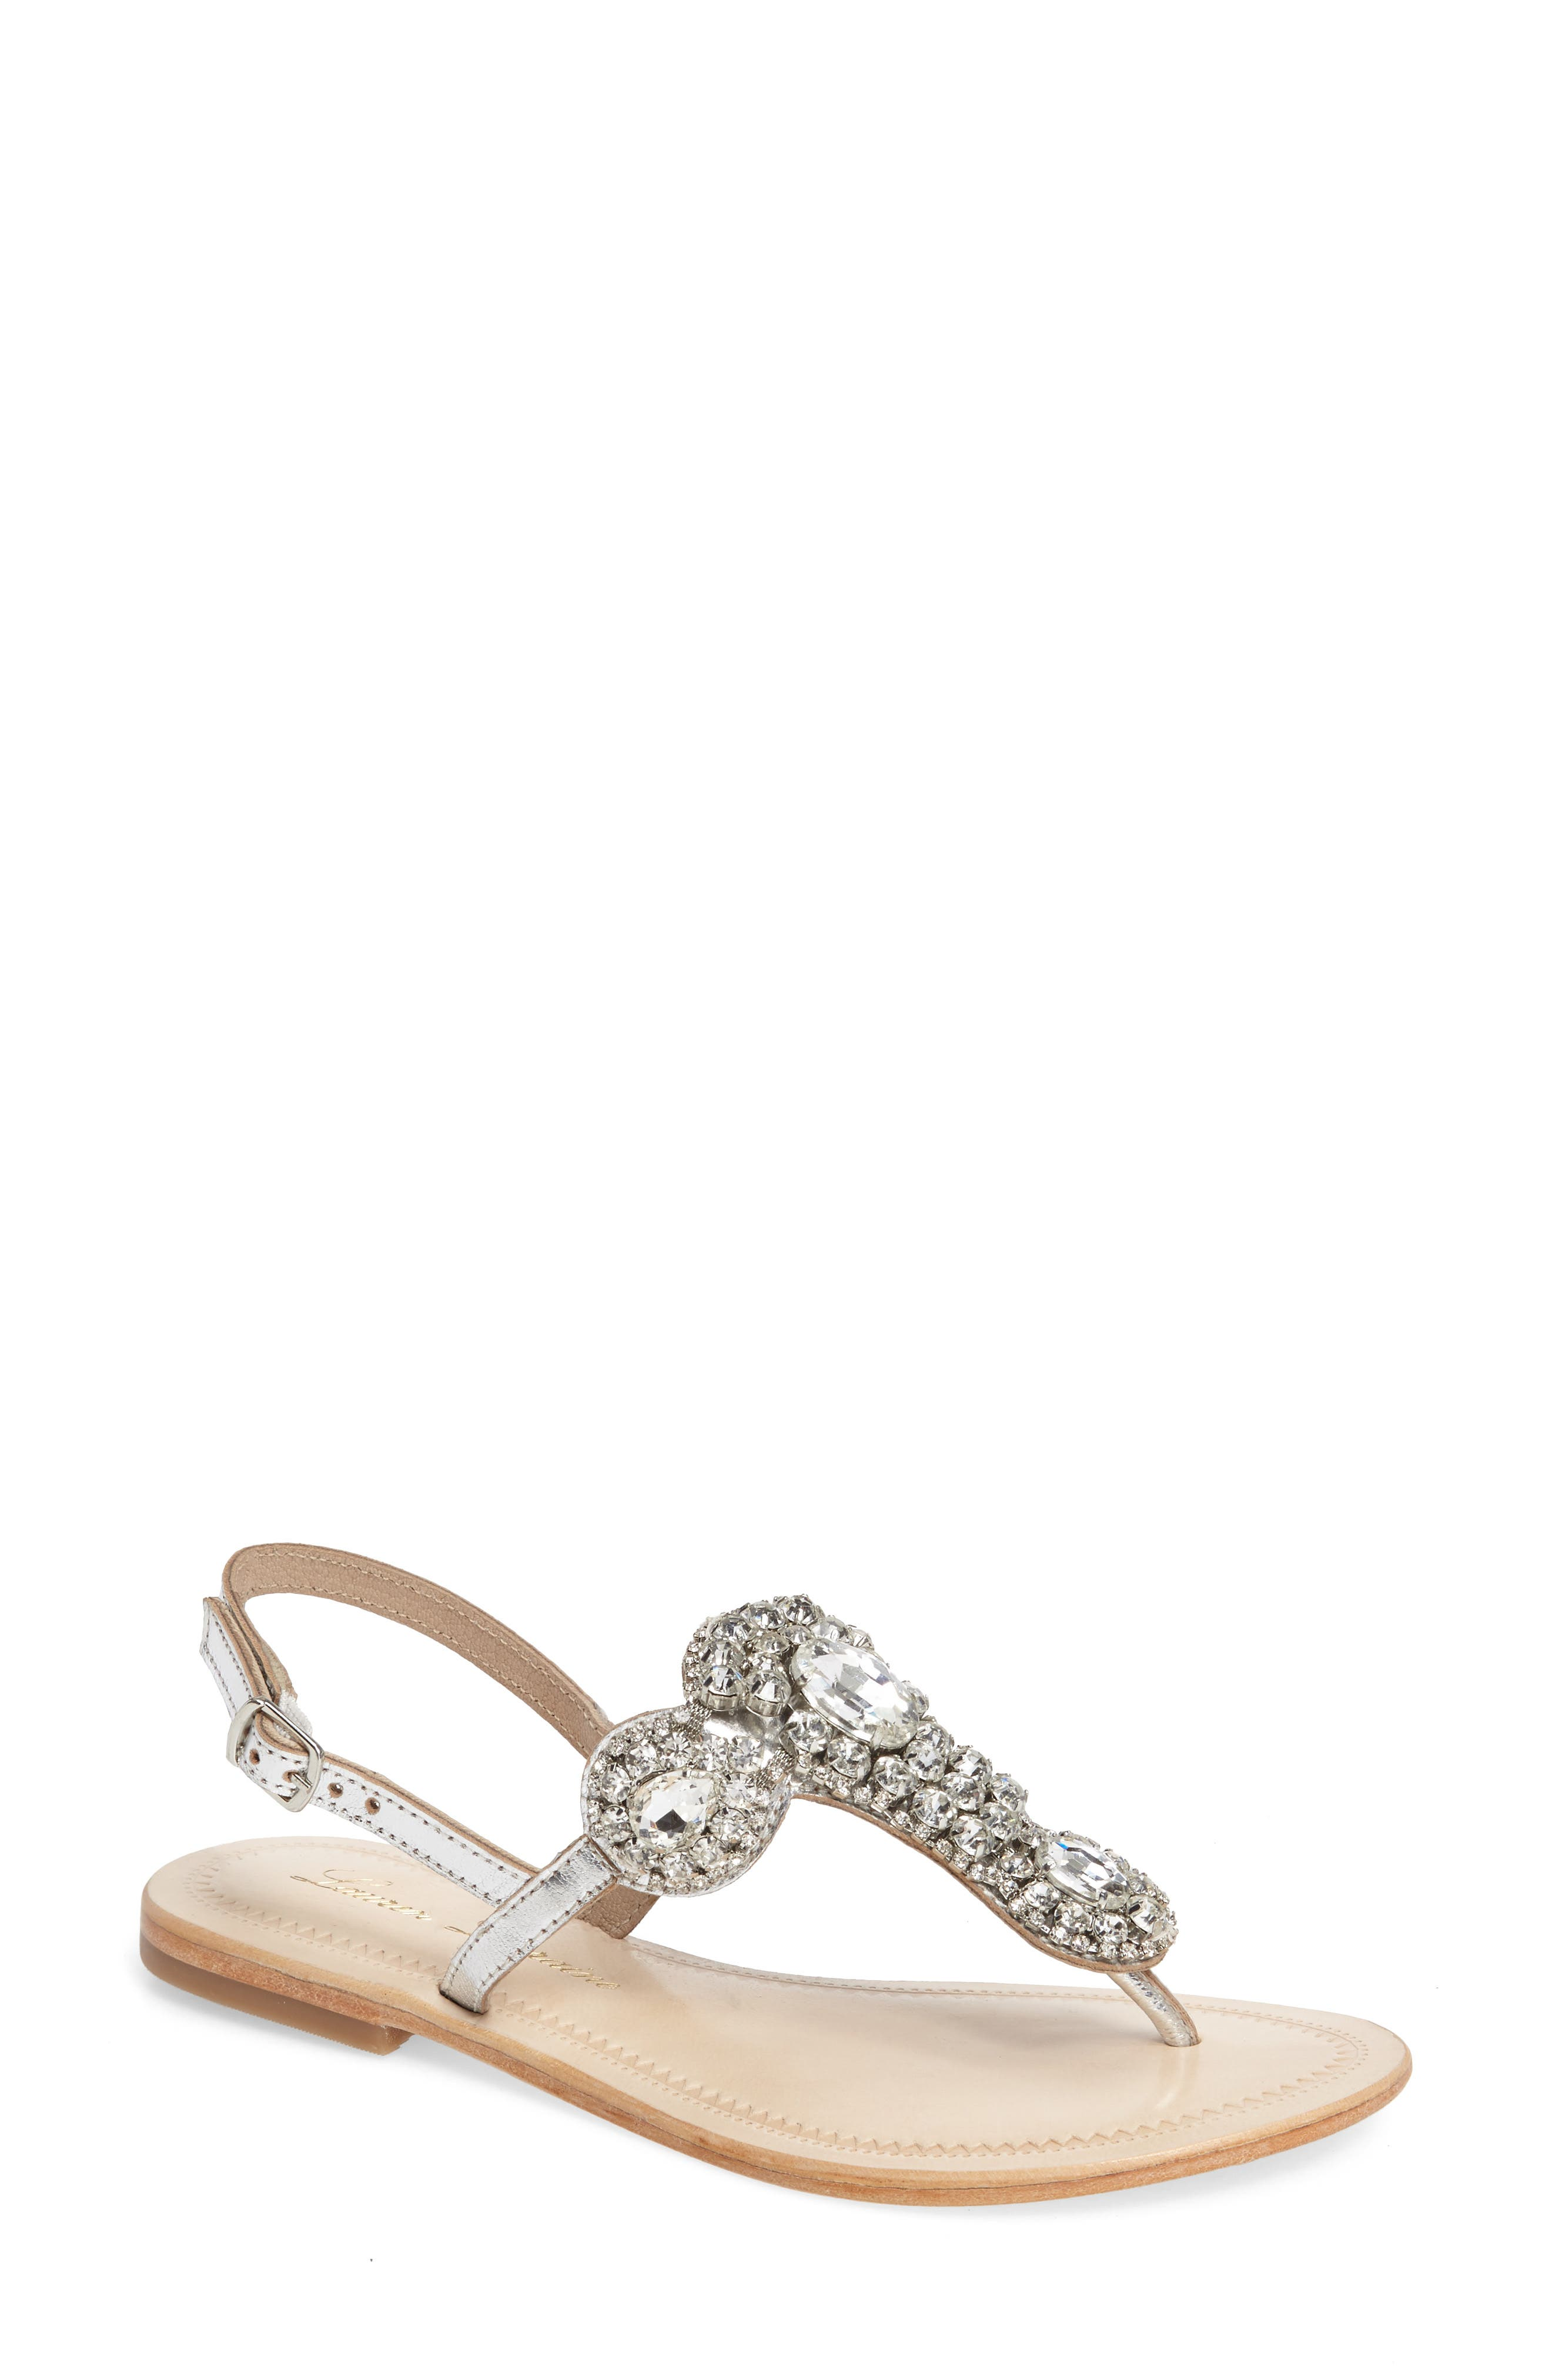 Bahama Crystal Embellished Sandal,                             Main thumbnail 1, color,                             045